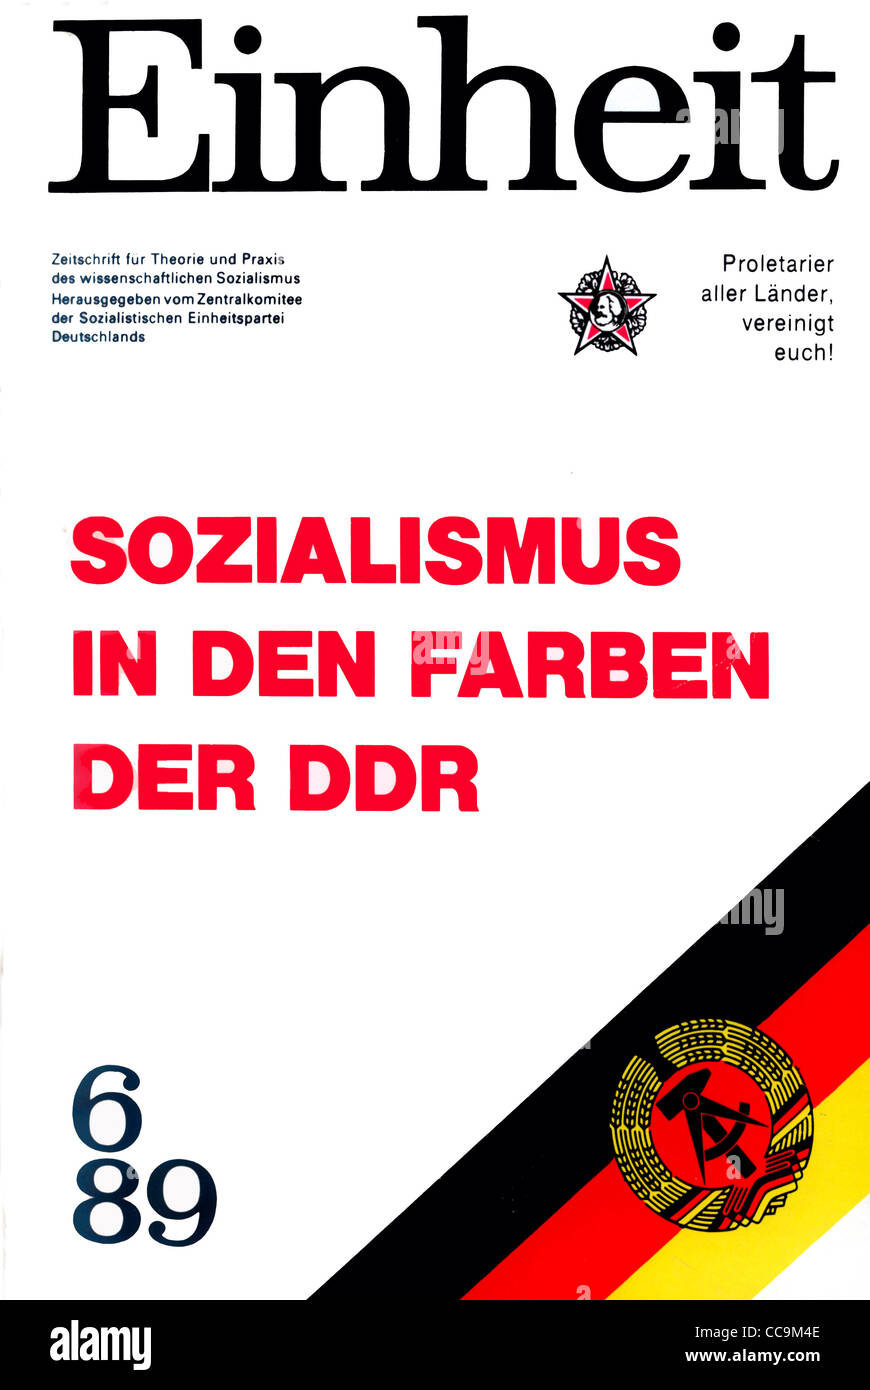 Political magazine of the official party SED of the GDR of June 1989. - Stock Image